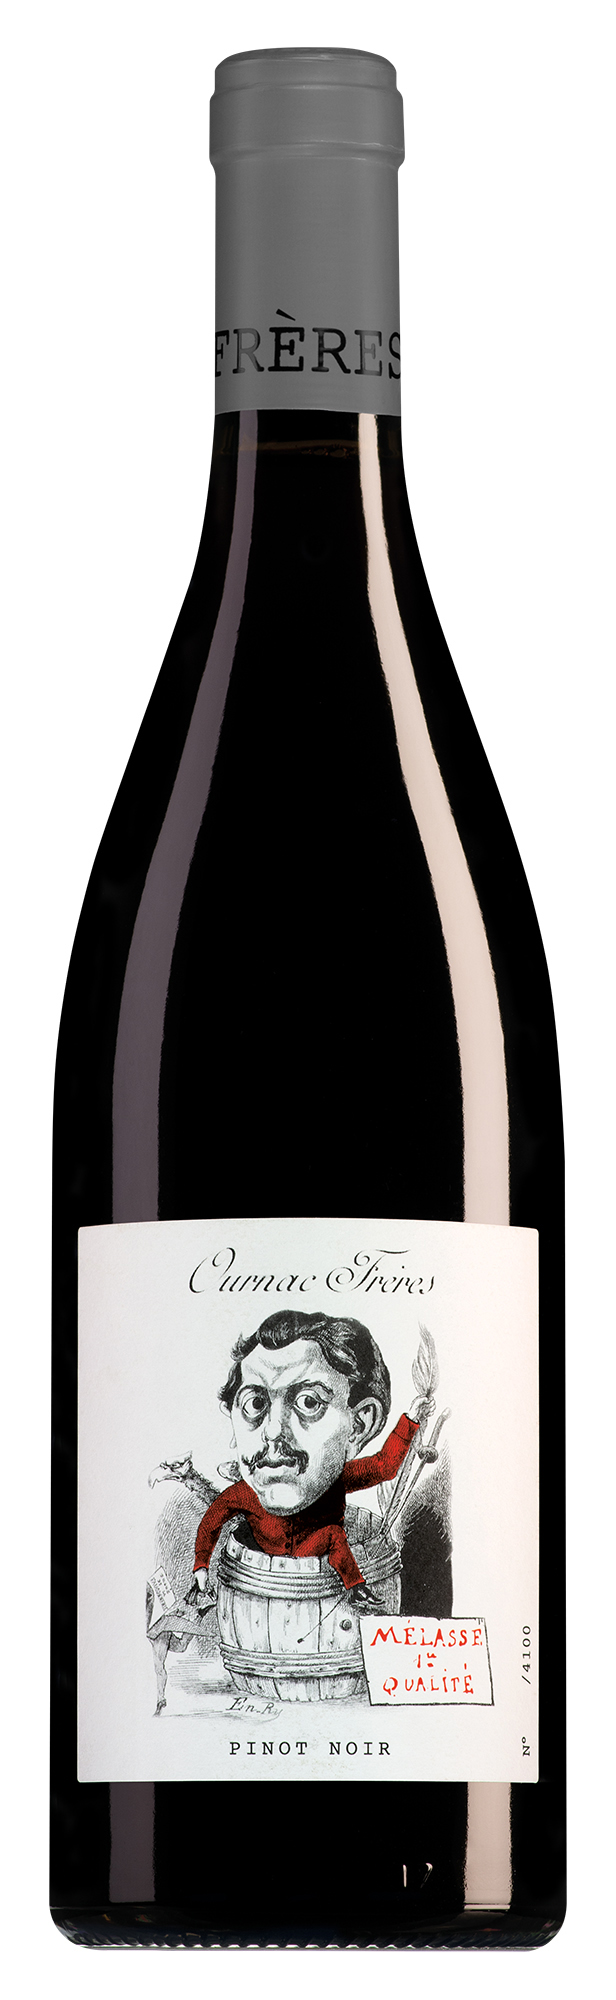 Domaine Coudoulet Pays d'Oc Ournac Frères Pinot Noir